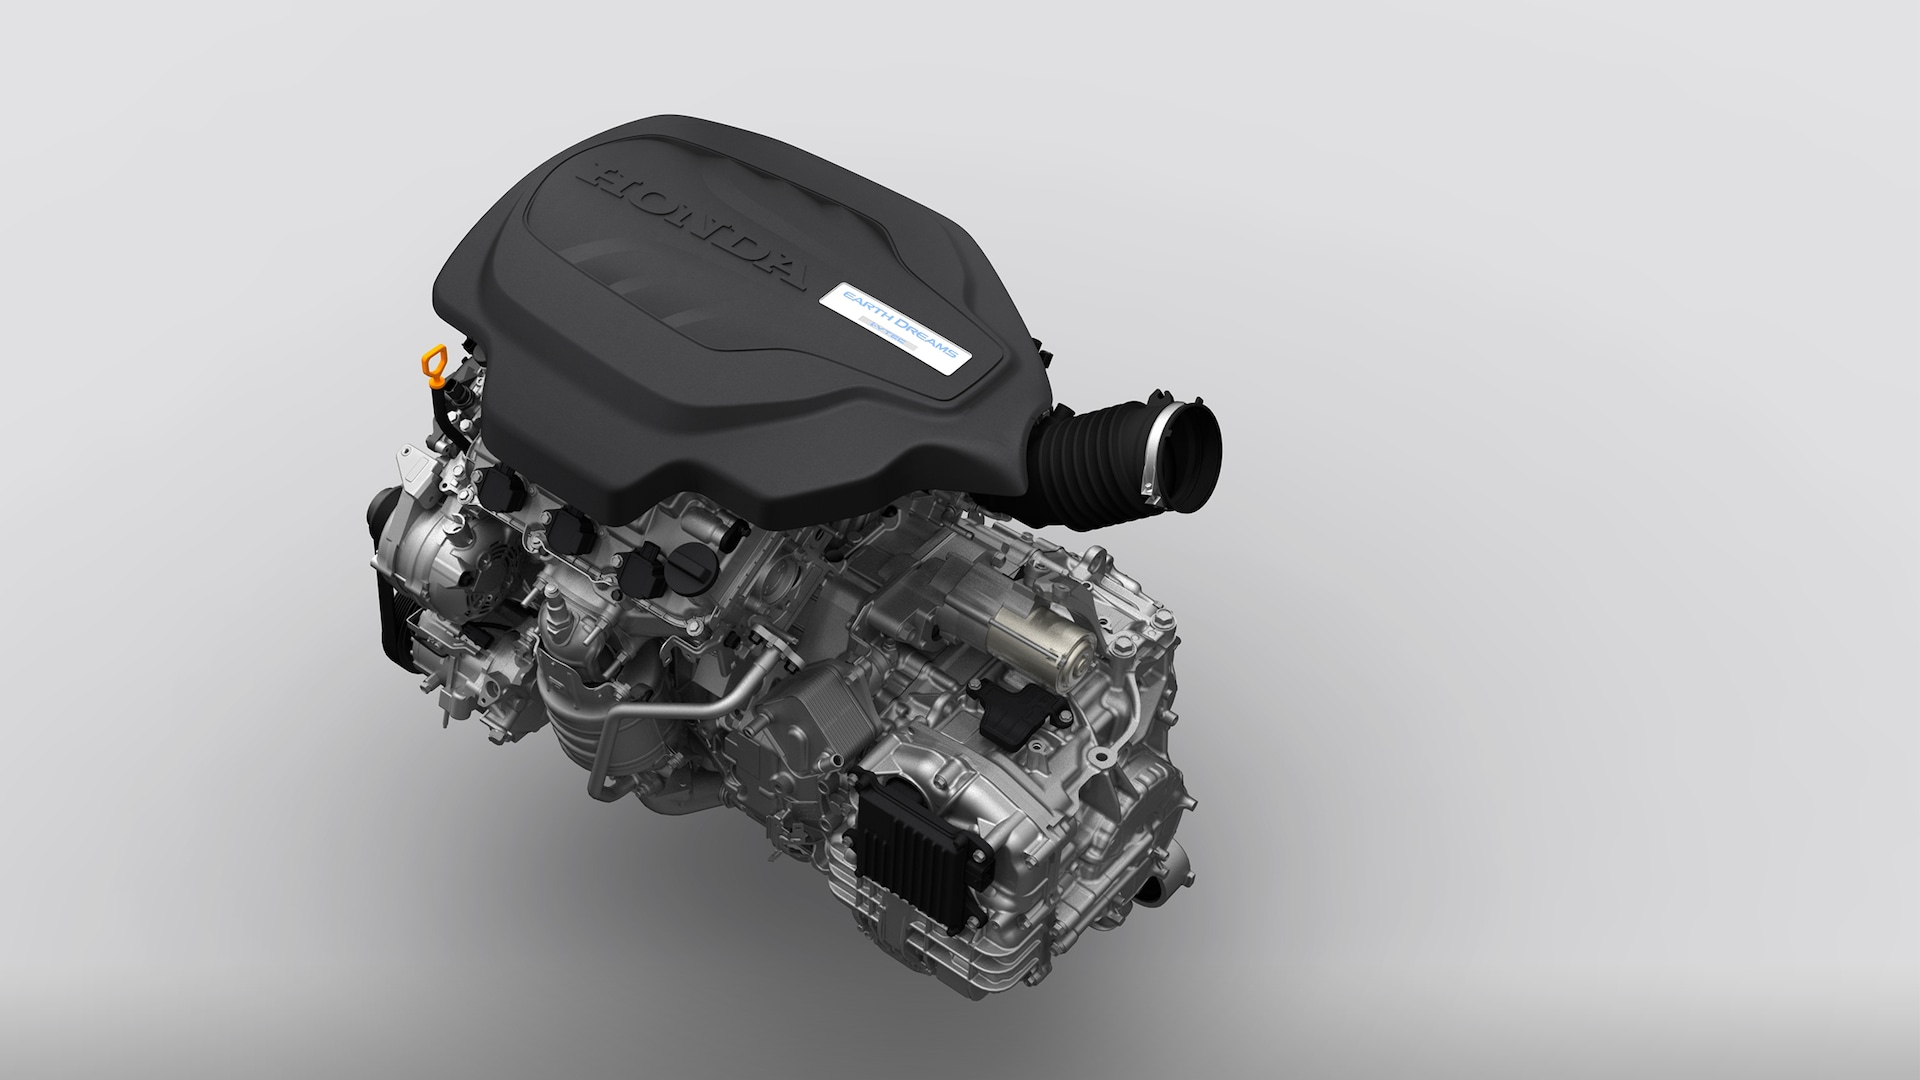 Detail view of the 2022 Honda Odyssey V-6 engine.